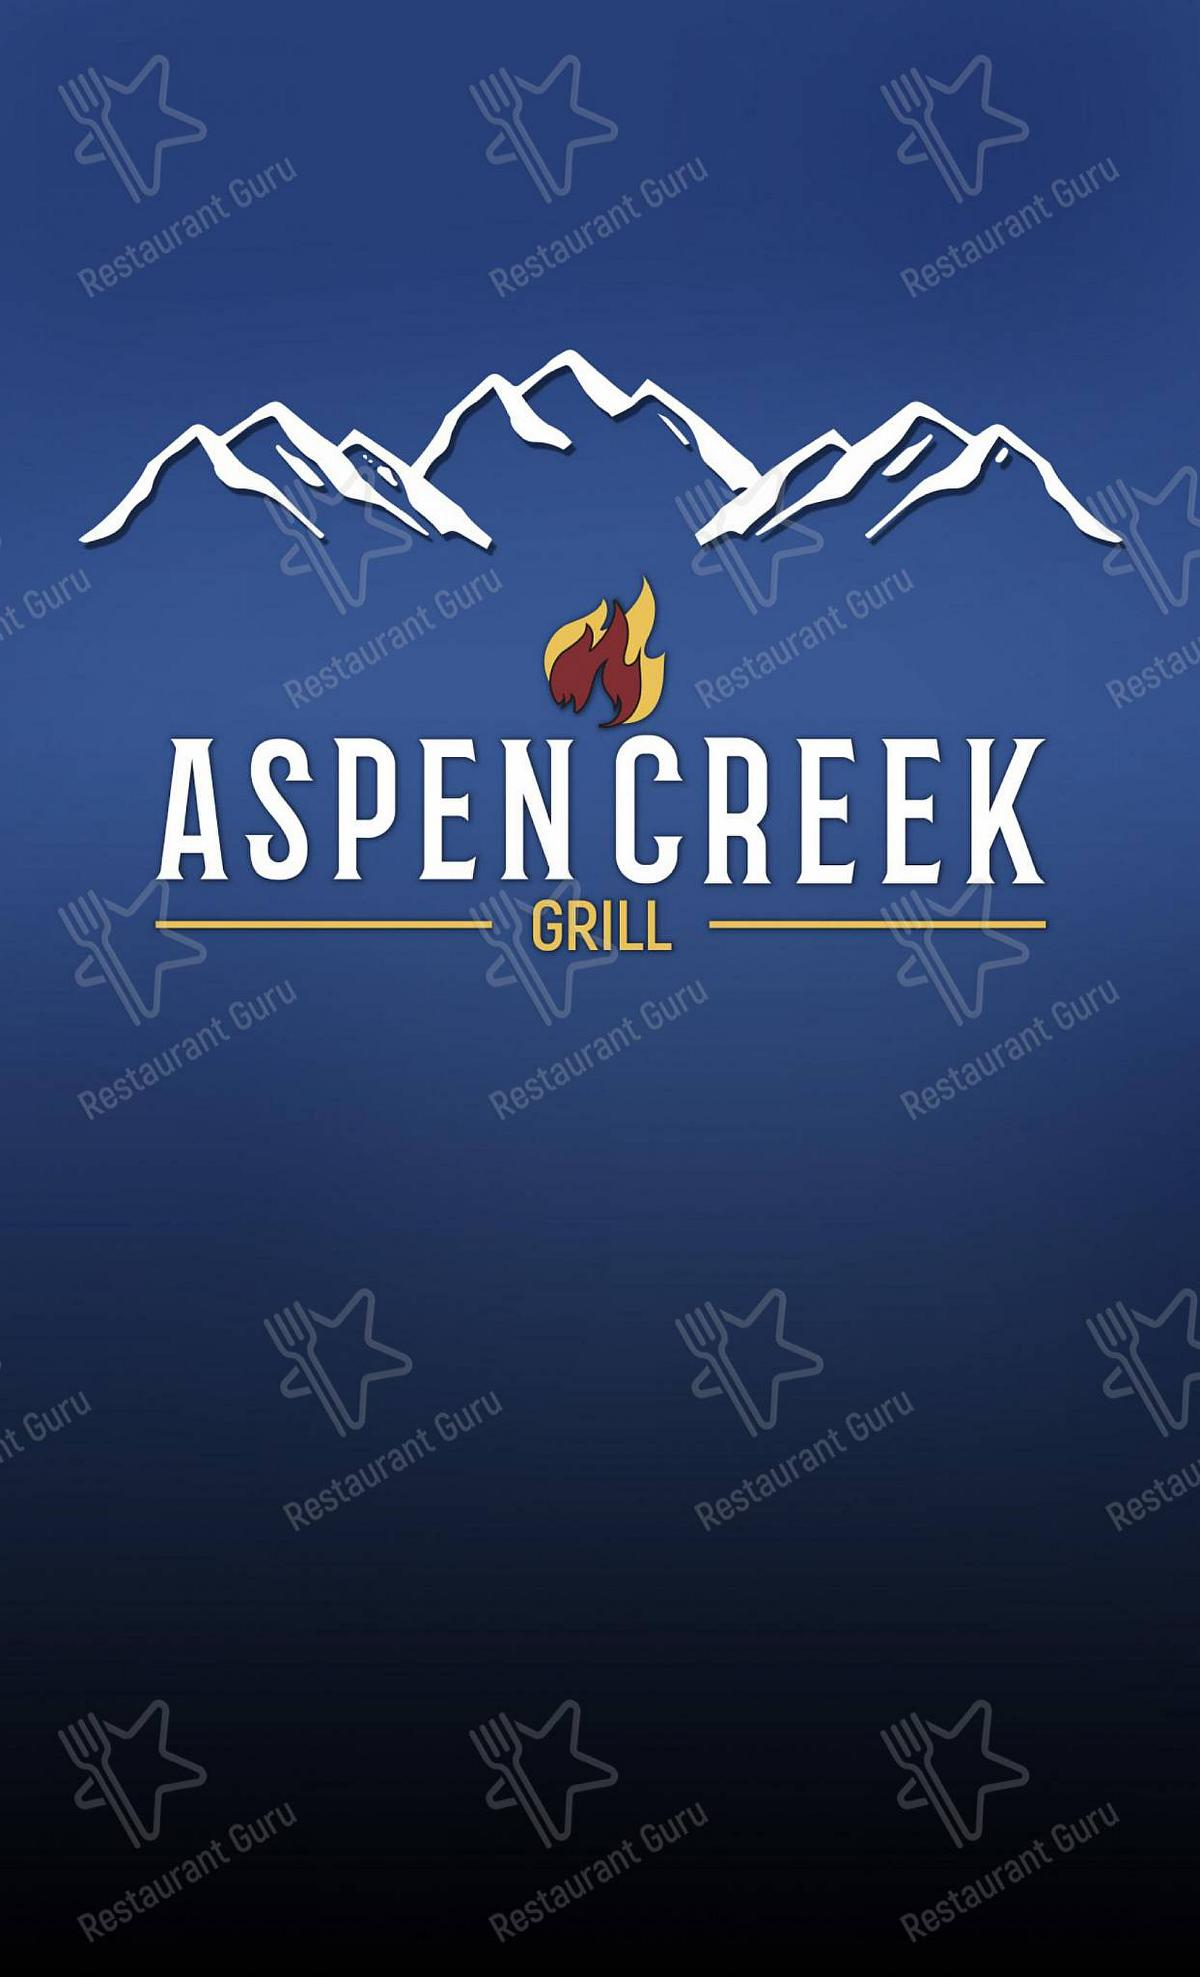 Aspen Creek Grill - Restaurant Noblesville menu - meals and drinks